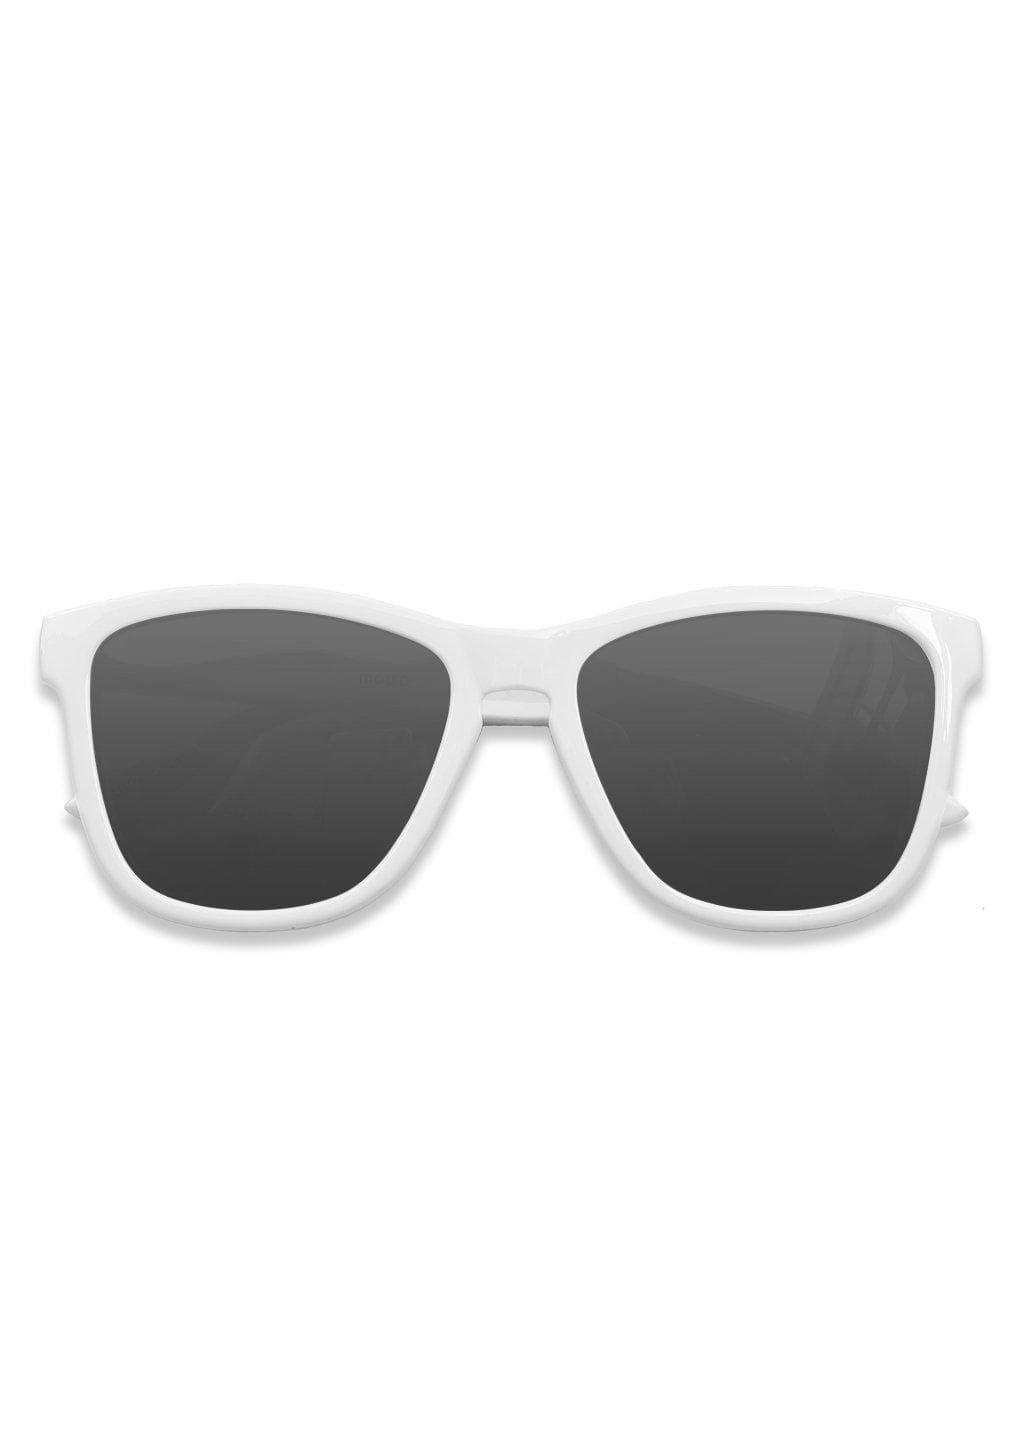 Our Mood V2 is an improved version of our last wayfarers. Plastic body for great quality and durabilty. This is Ace with white frame and black lenses. From the front.